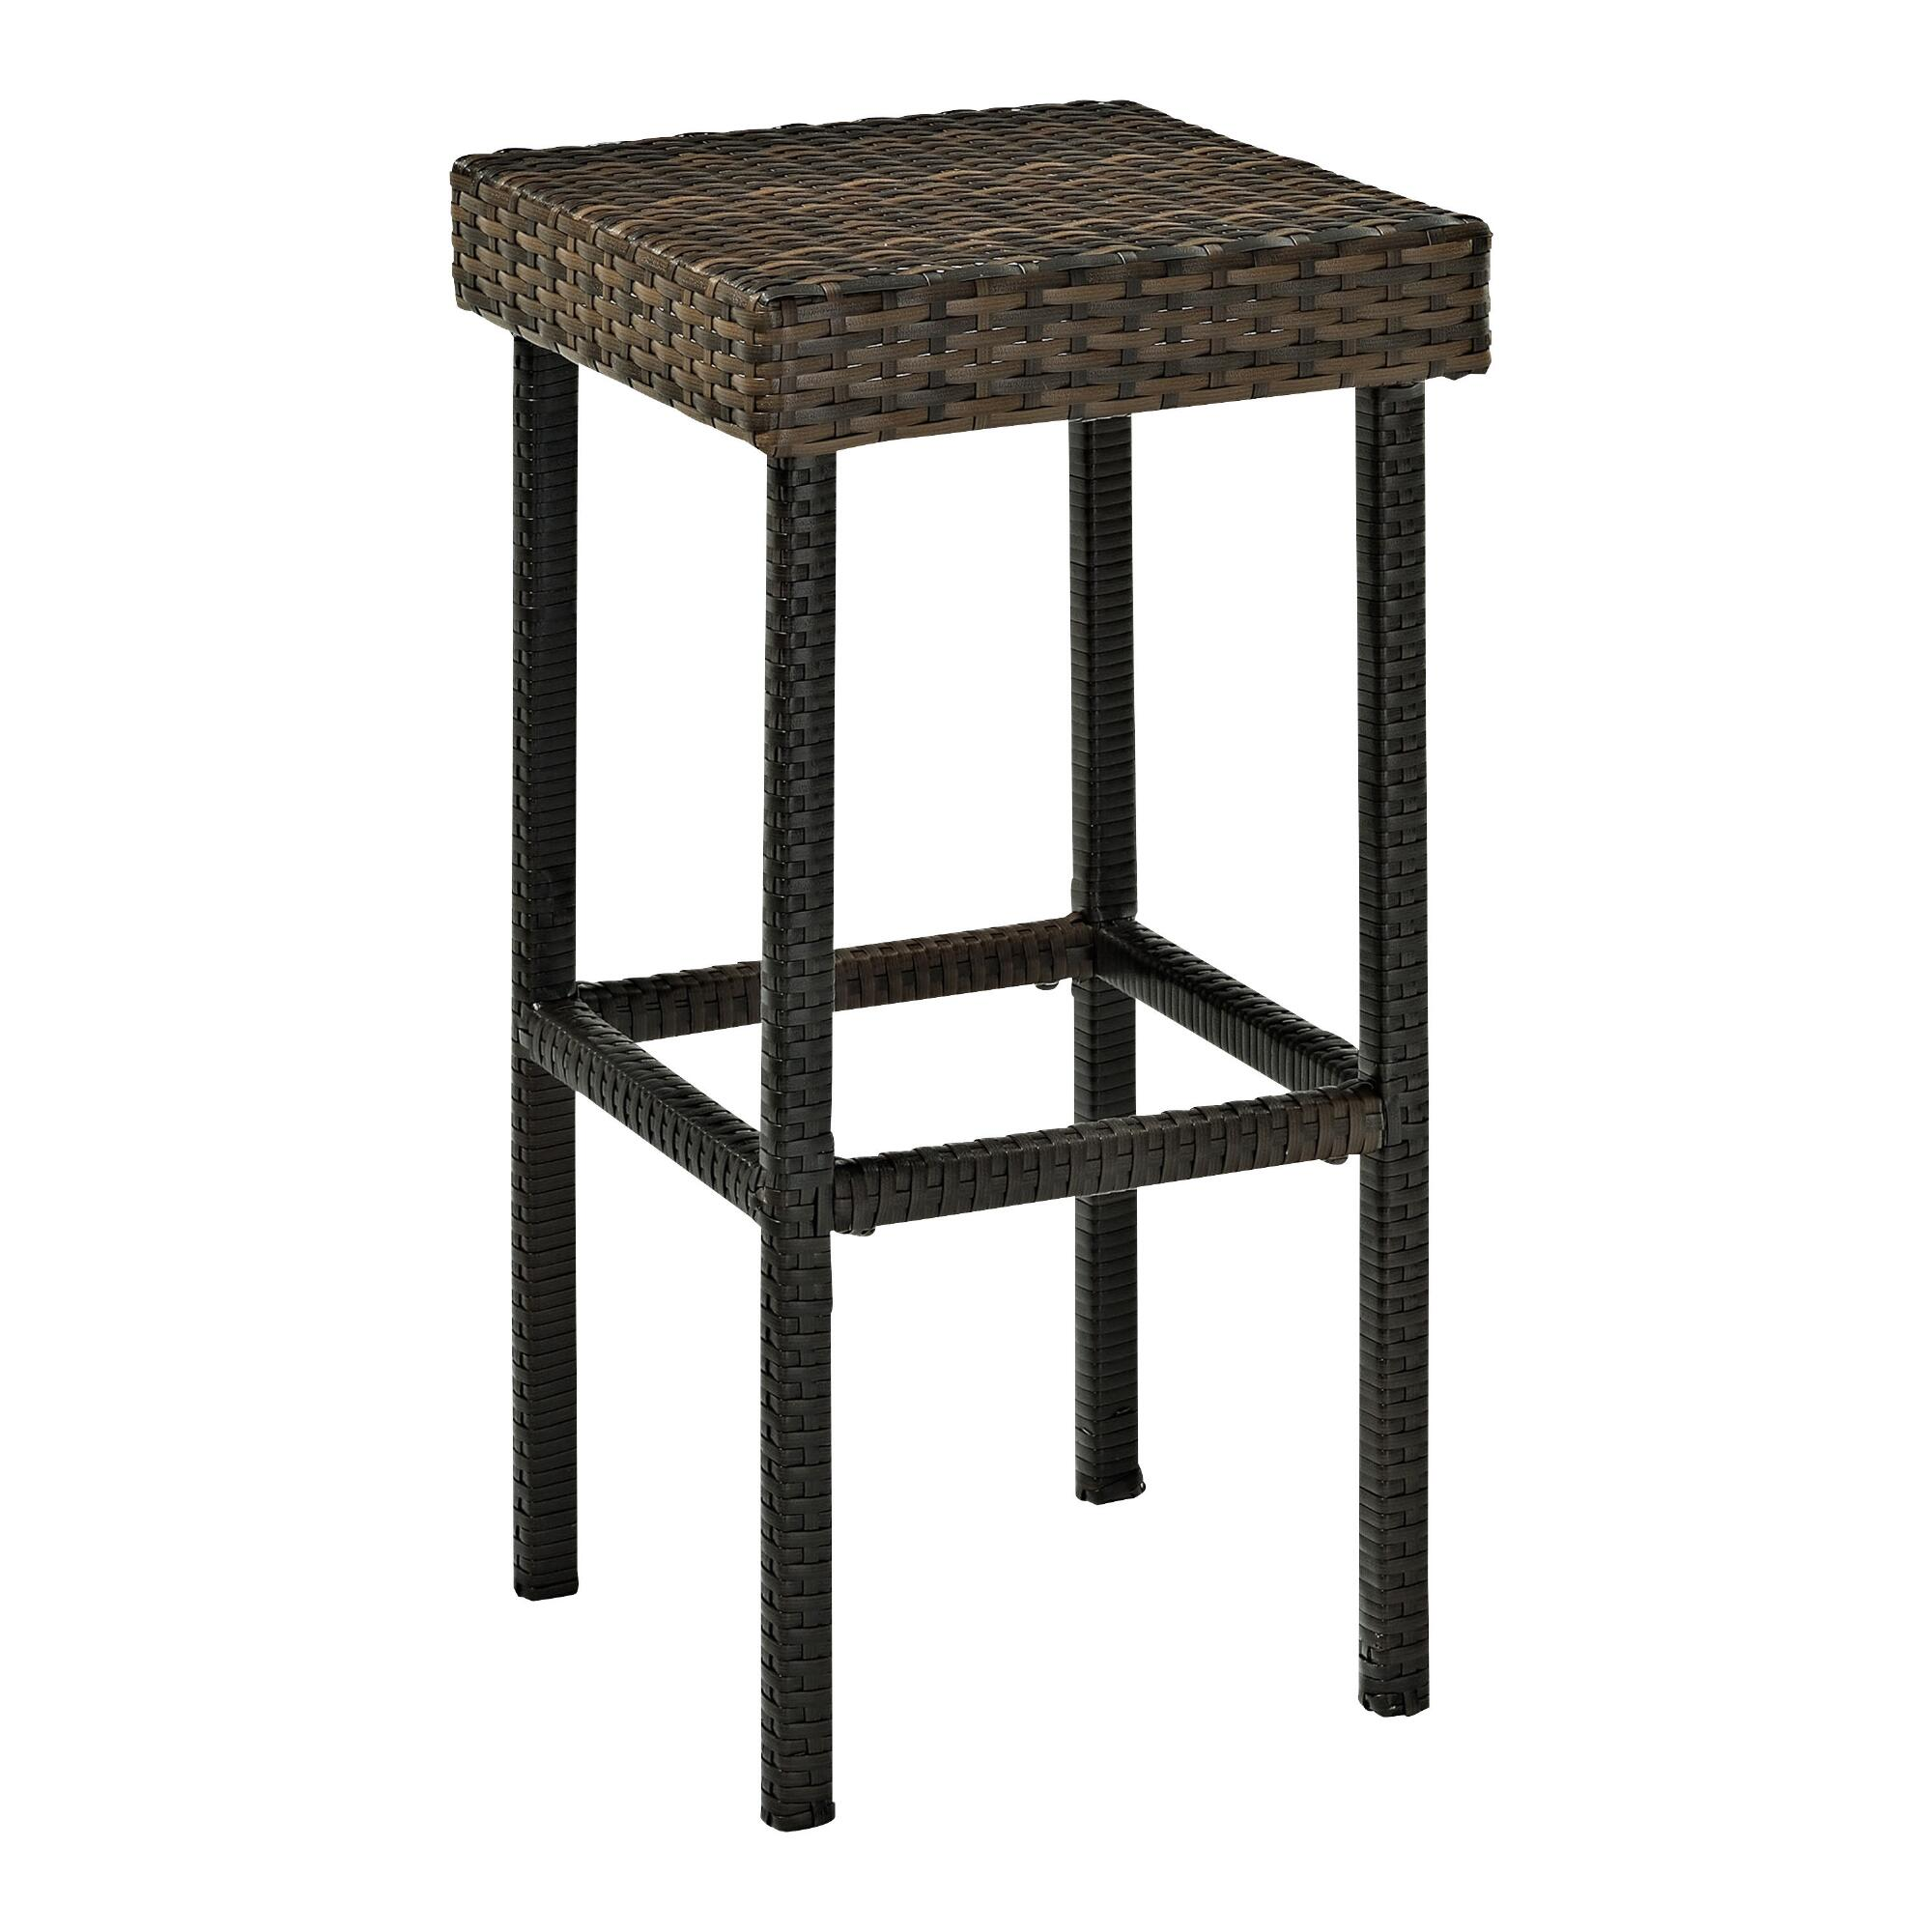 All Weather Wicker Pinamar Outdoor Patio Barstools Set of 2: Brown - Resin by World Market